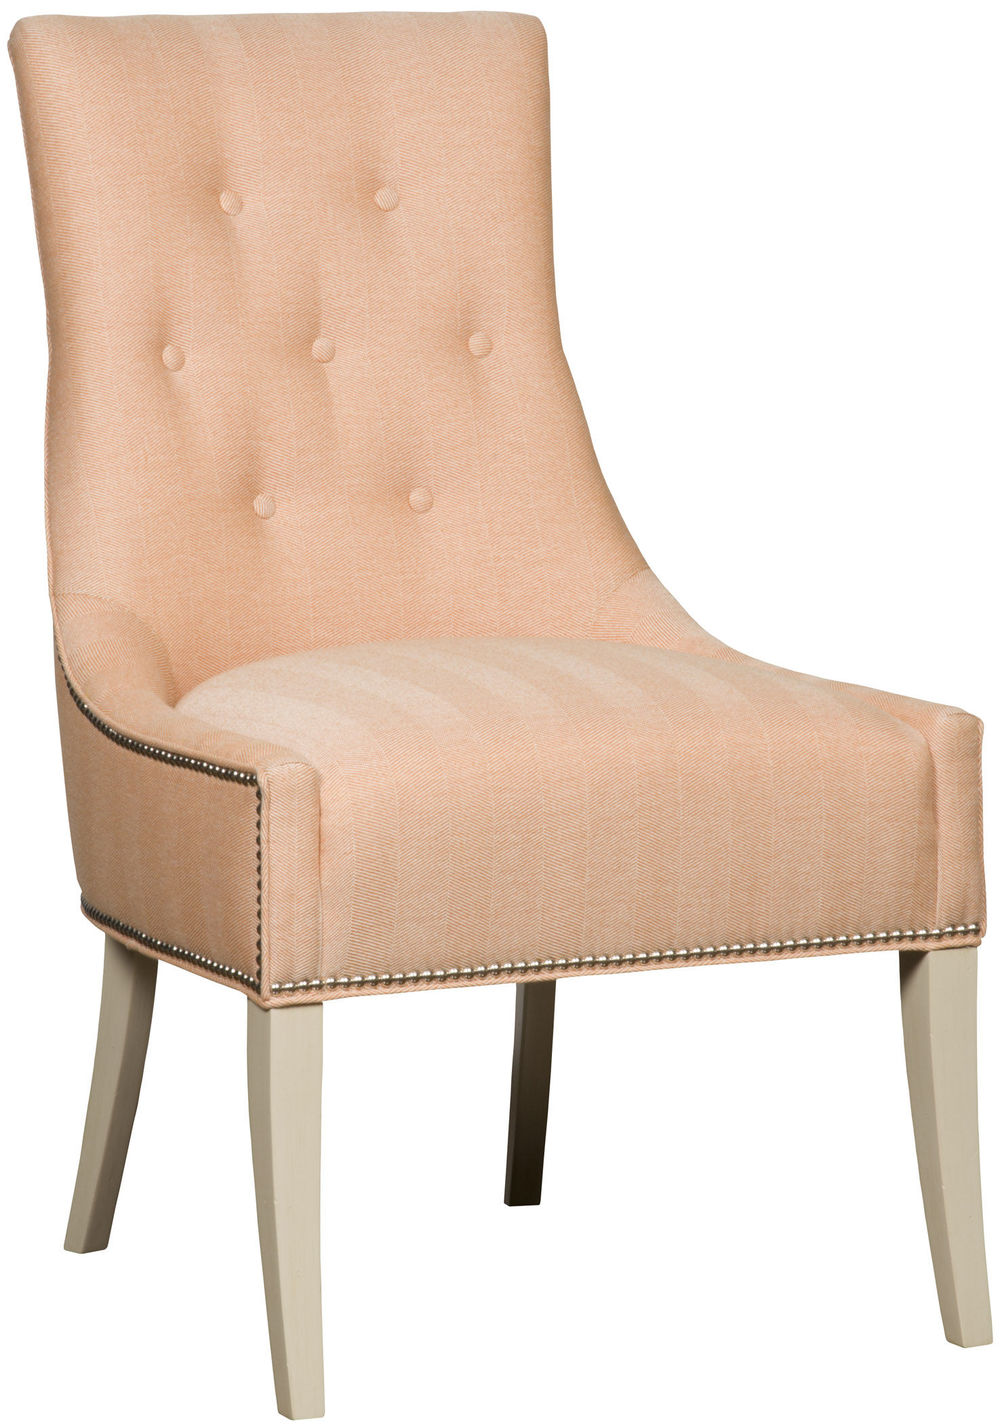 Vanguard Furniture - Nevils Dining Side Chair